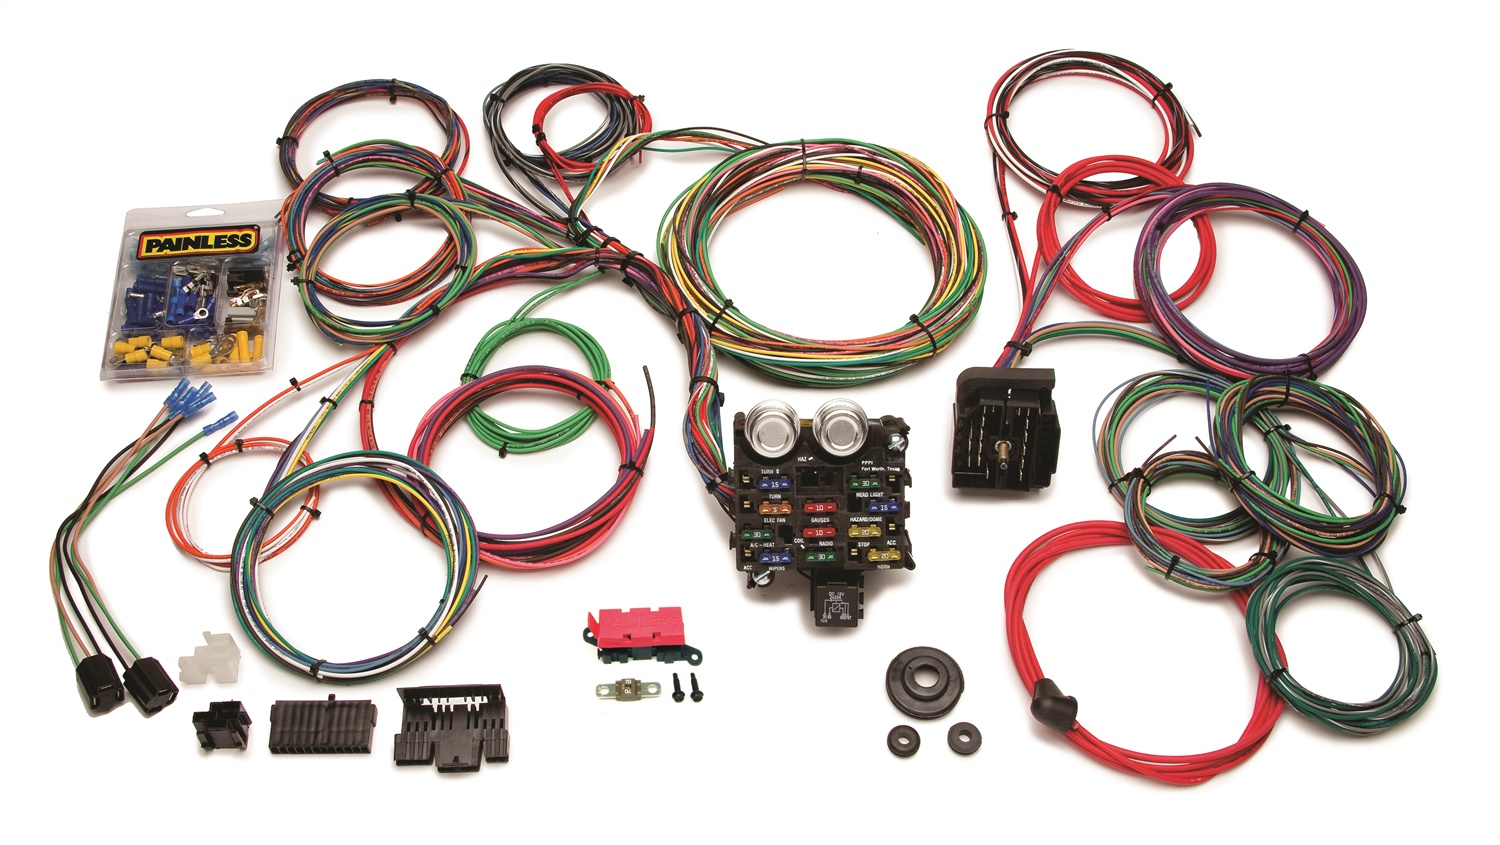 painless wiring 20103 21 circuit classic customizable car harness ebay